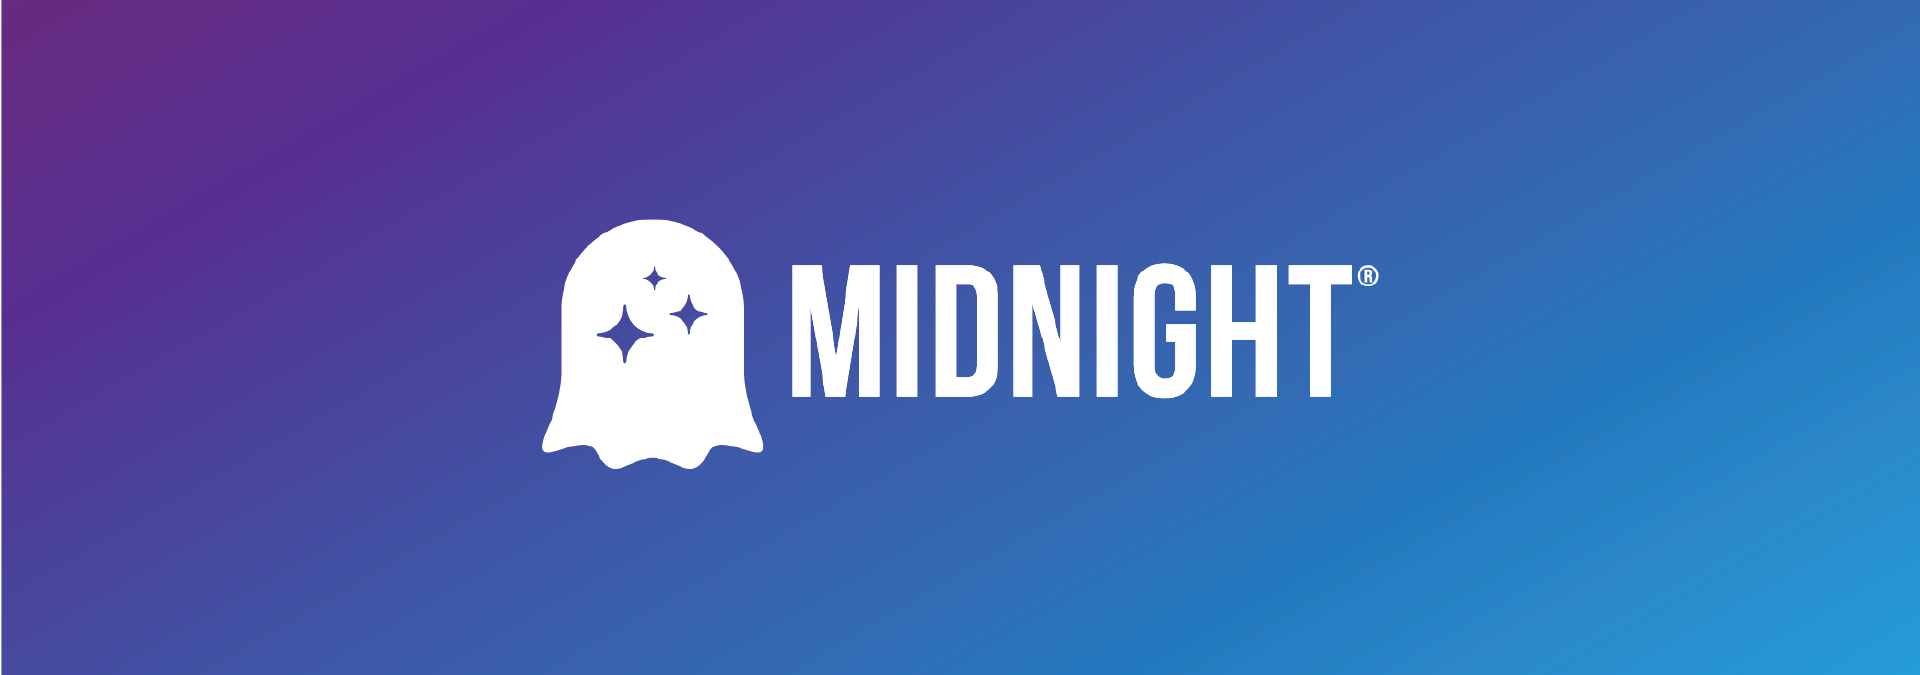 Why Ghostery Midnight?